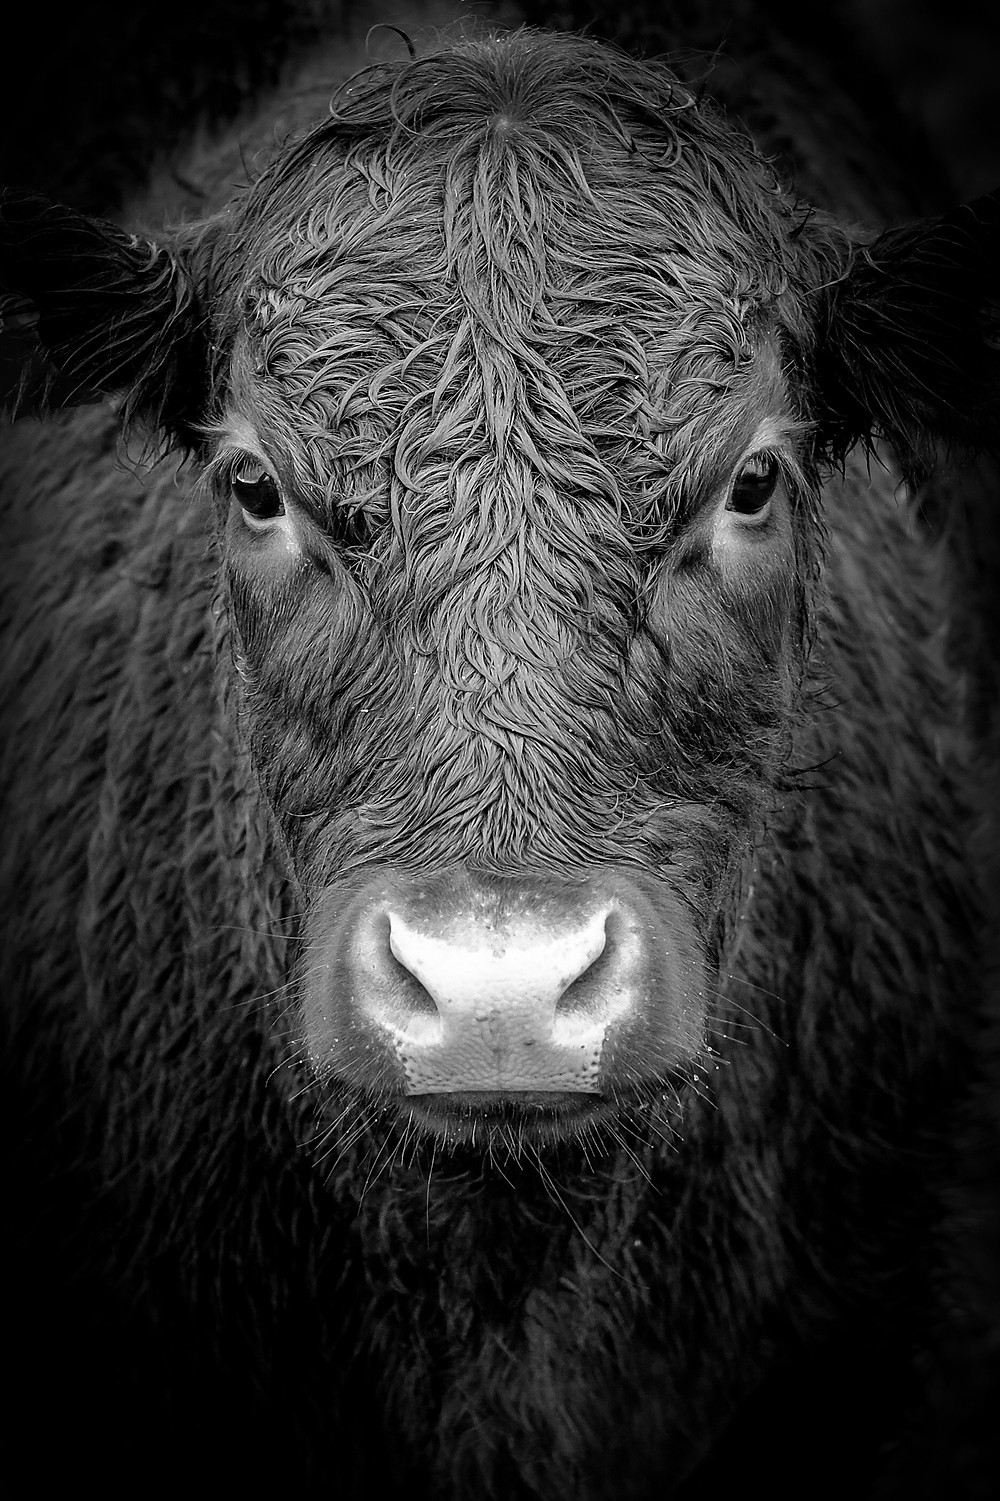 Planet Protector Cattle Ranching environment advocacy